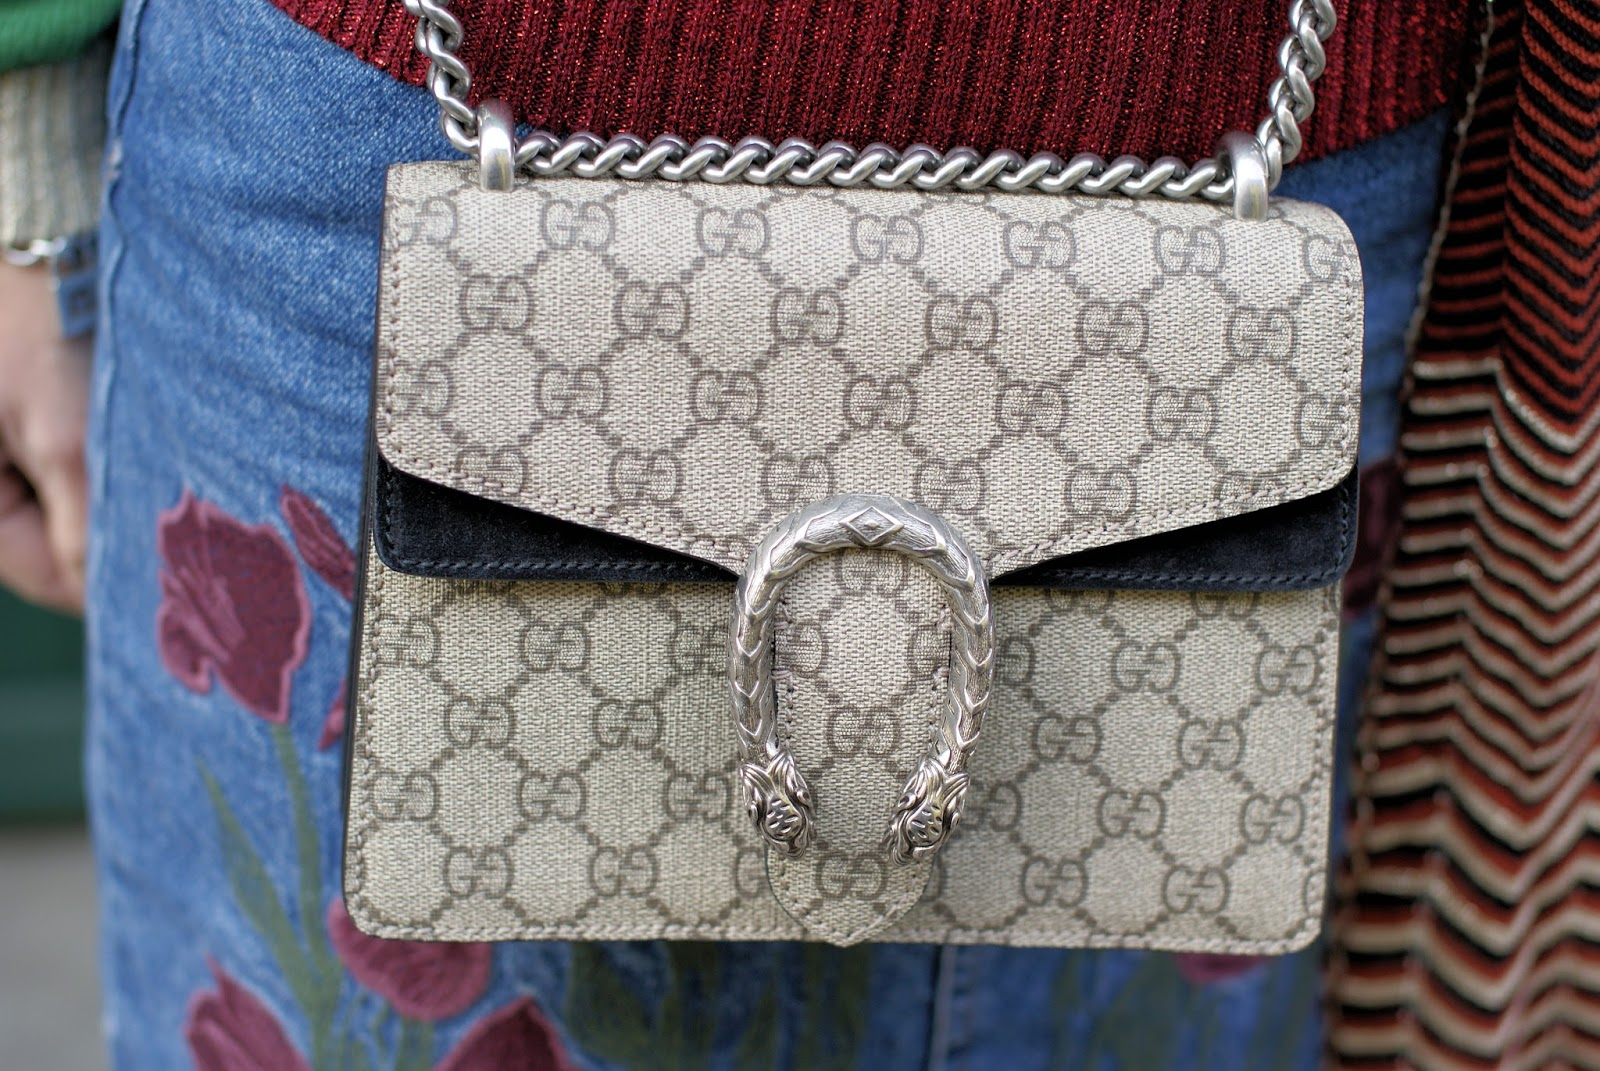 Gucci Dionysus bag on Fashion and Cookies fashion blog, fashion blogger style